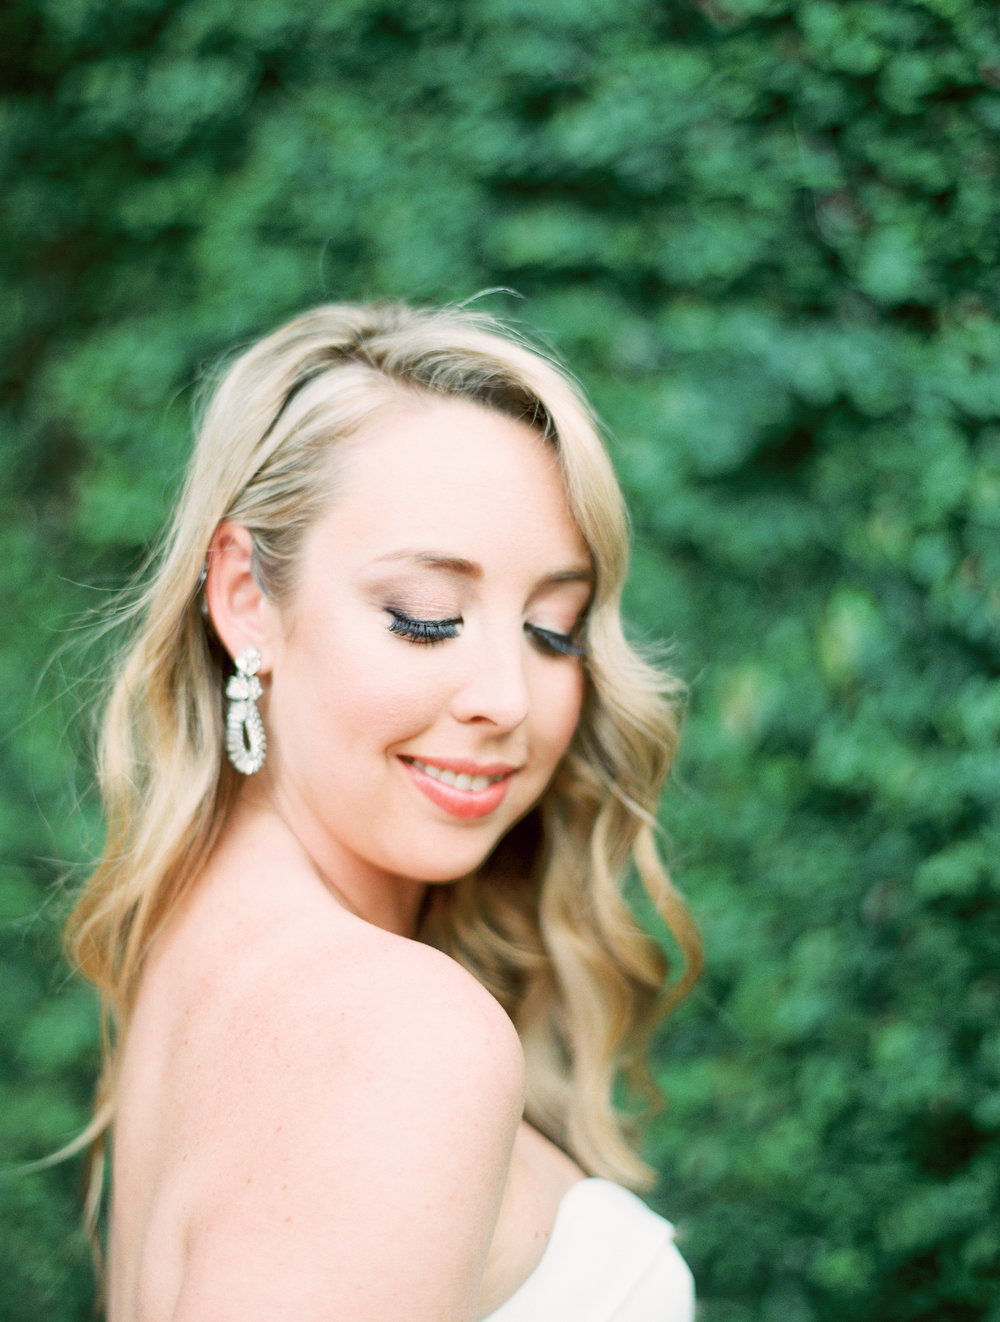 Courtney+Scott (1 of 1)-4.jpg